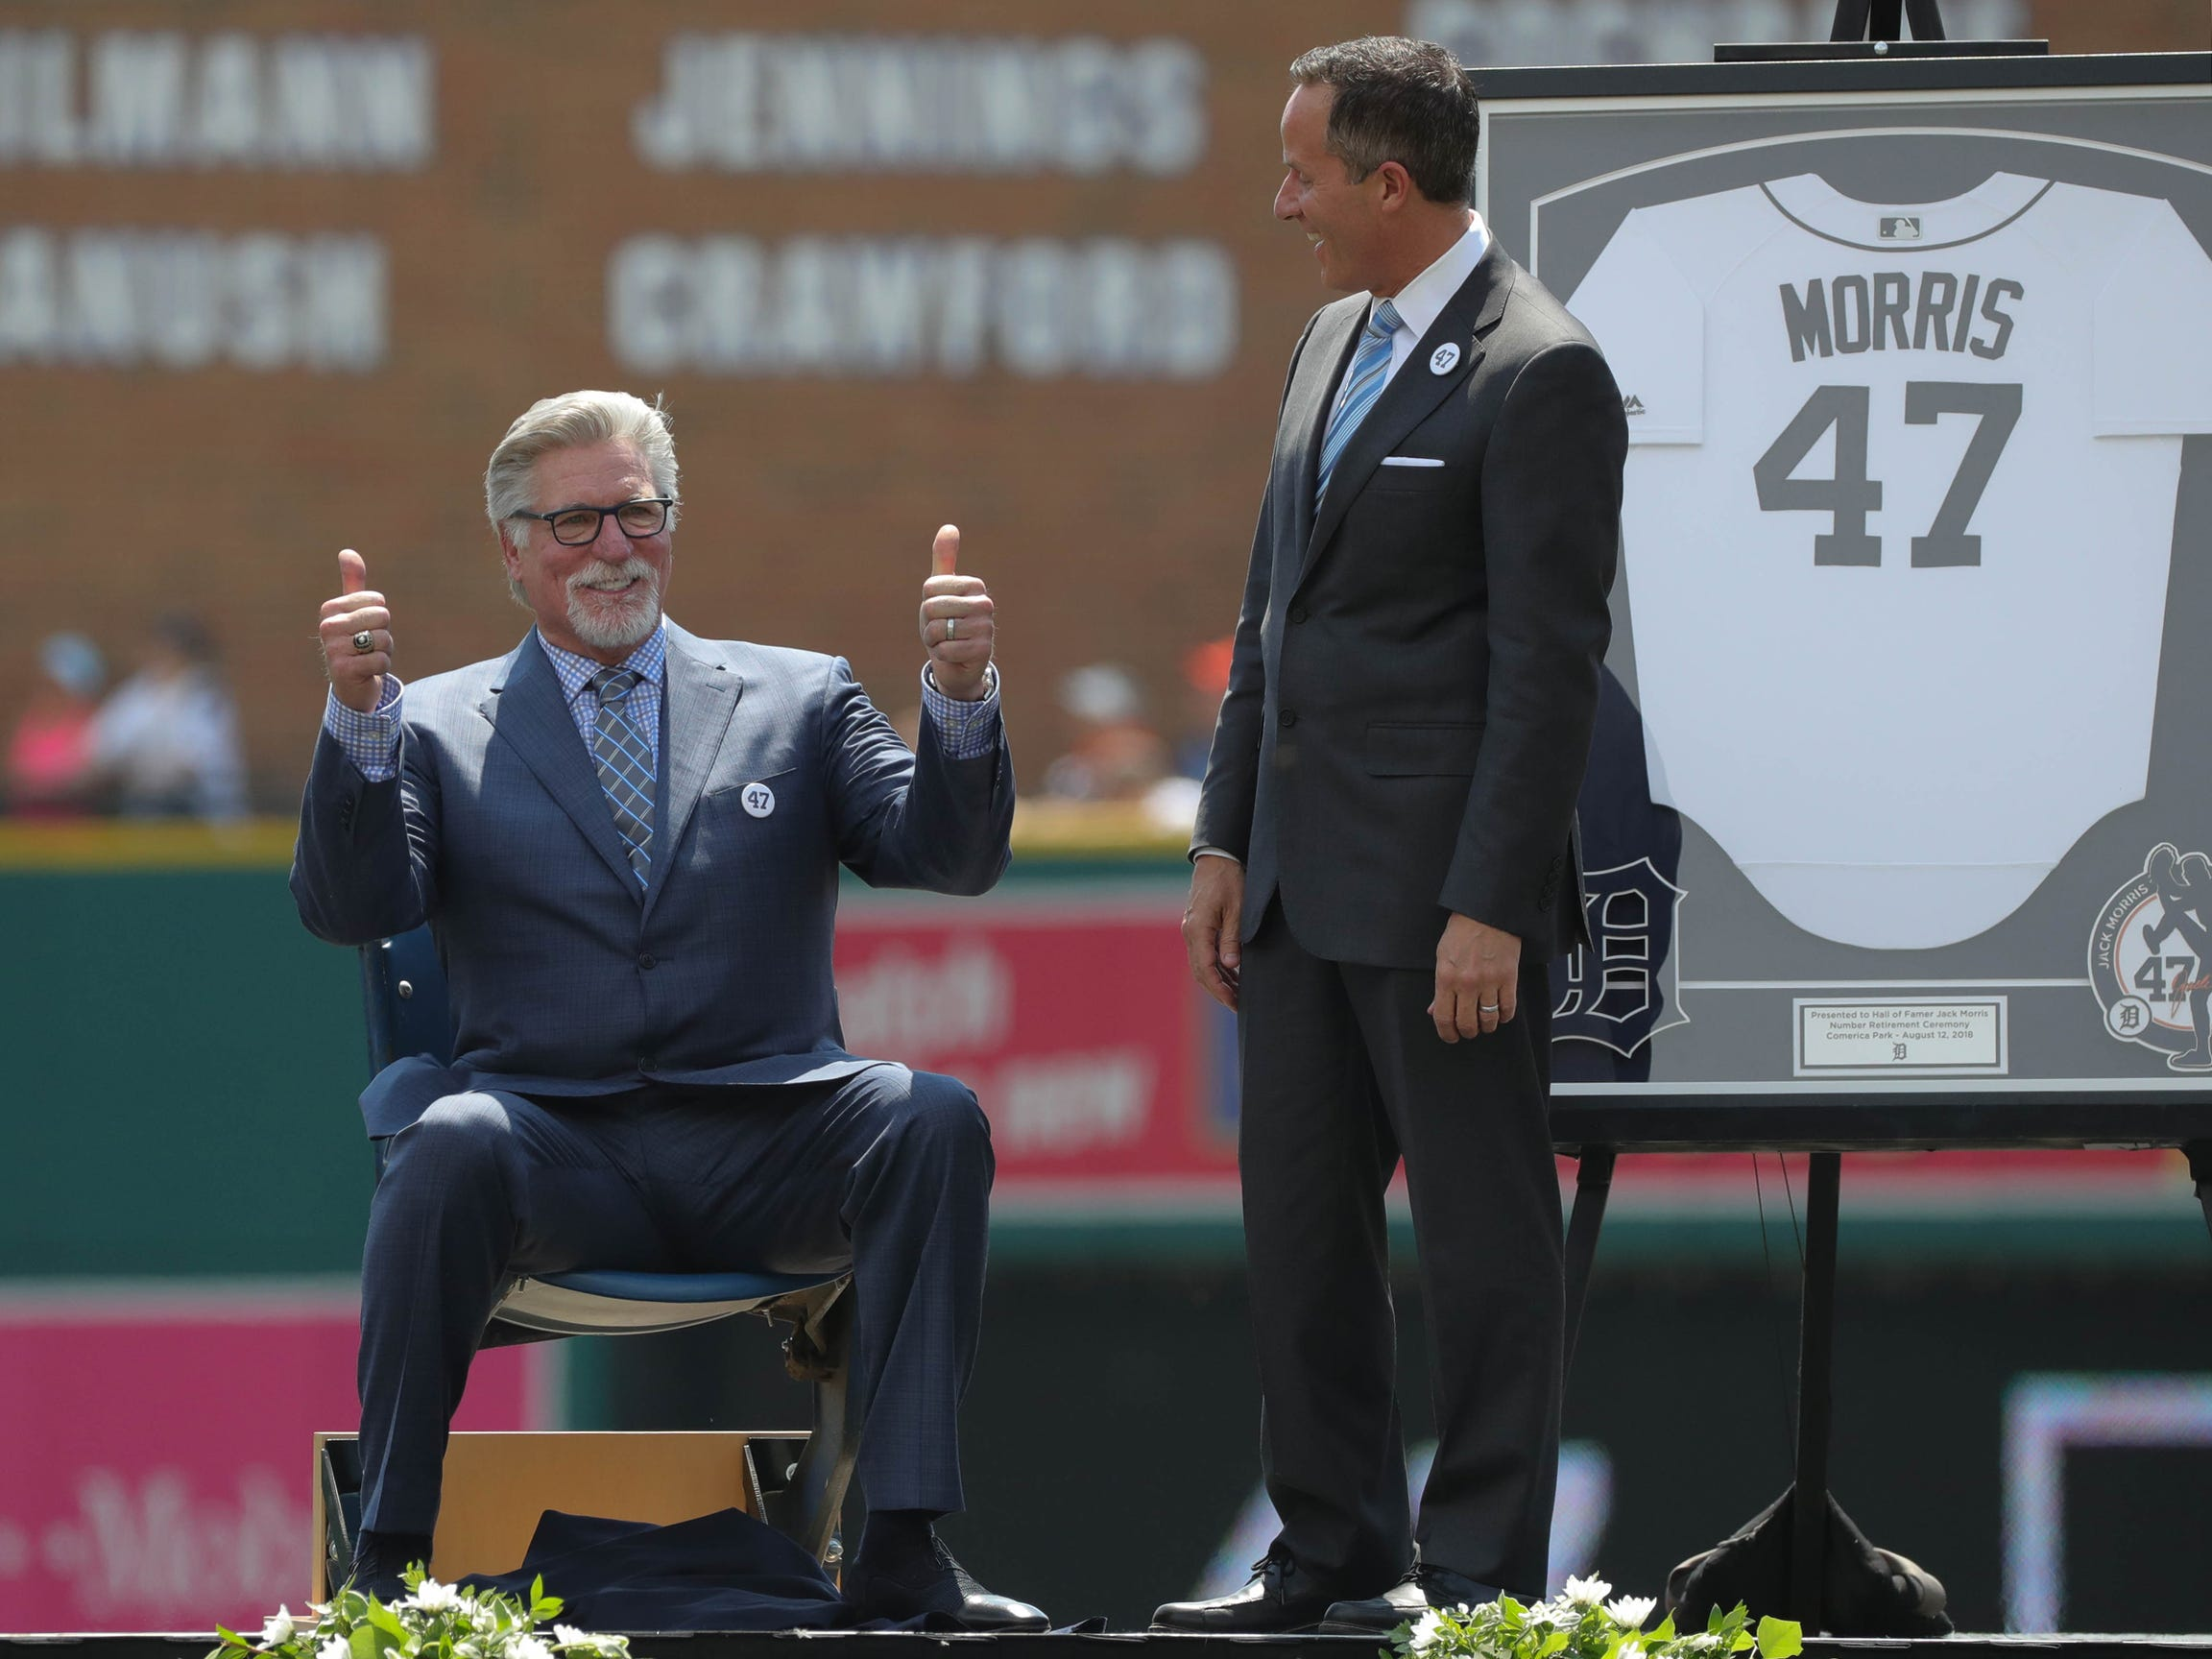 Detroit Tigers Hall of Fame pitcher Jack Morris sits in seat no. 47 from the old Tiger Stadium by team owner Chris Illitch before the start of the Tigers game against Minnesota on Sunday, August 12, 2018, at Comerica Park in Detroit.